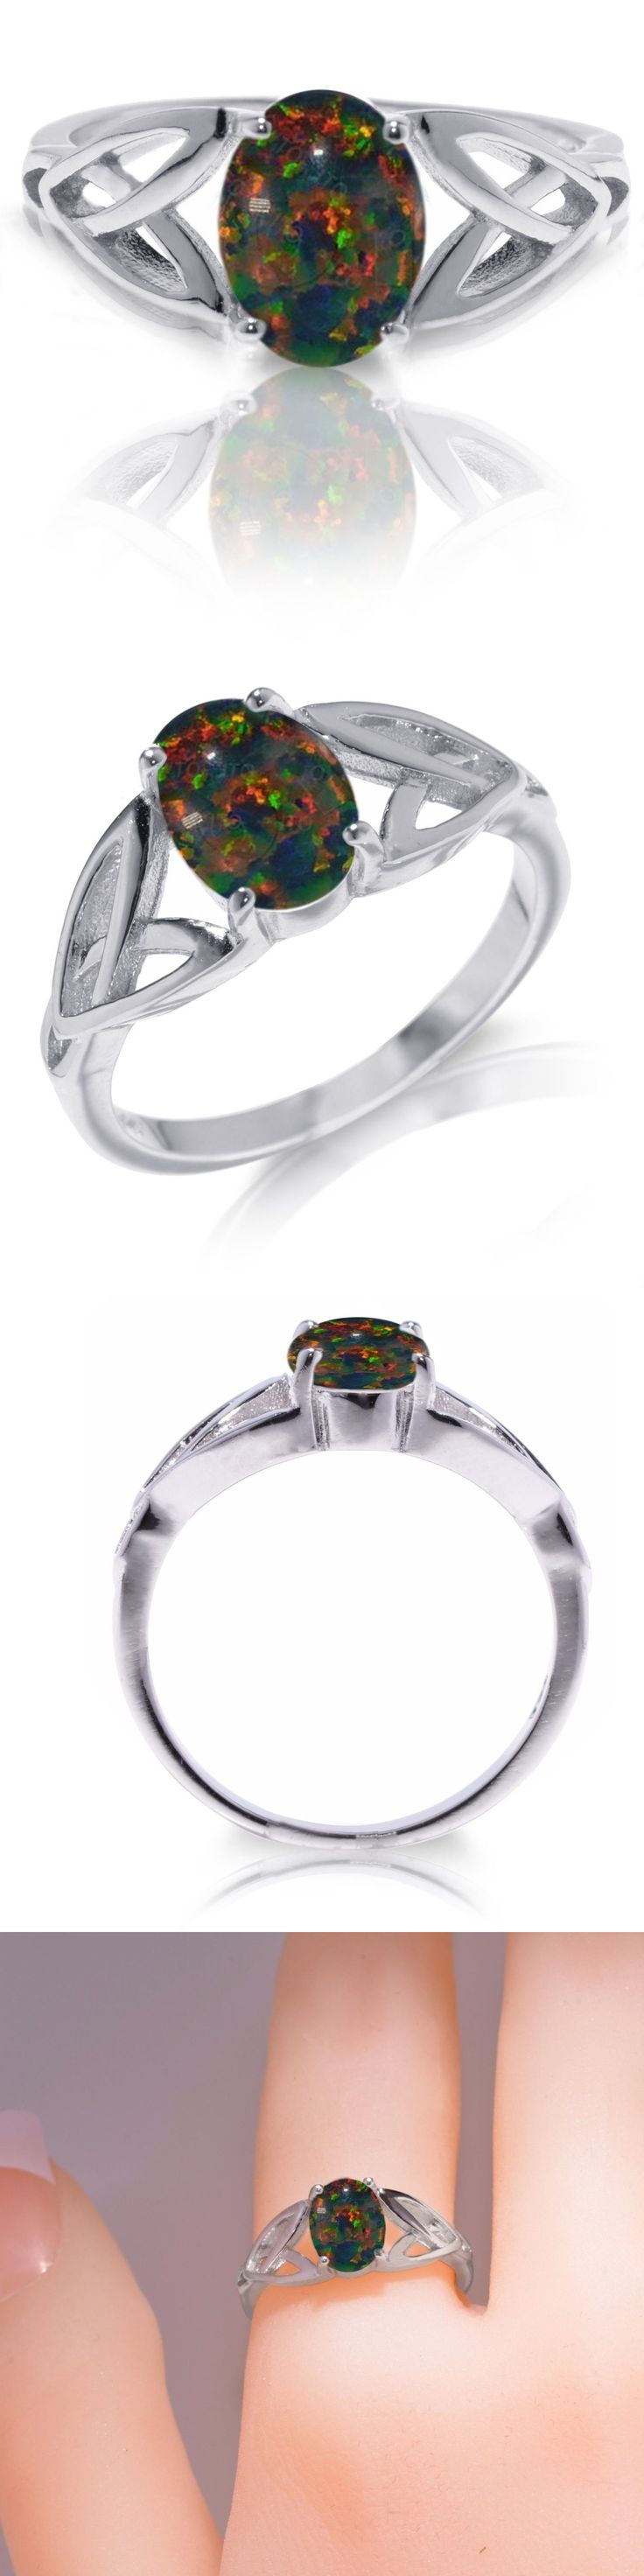 gaelic celtic ring harriet kelsall engagement rings